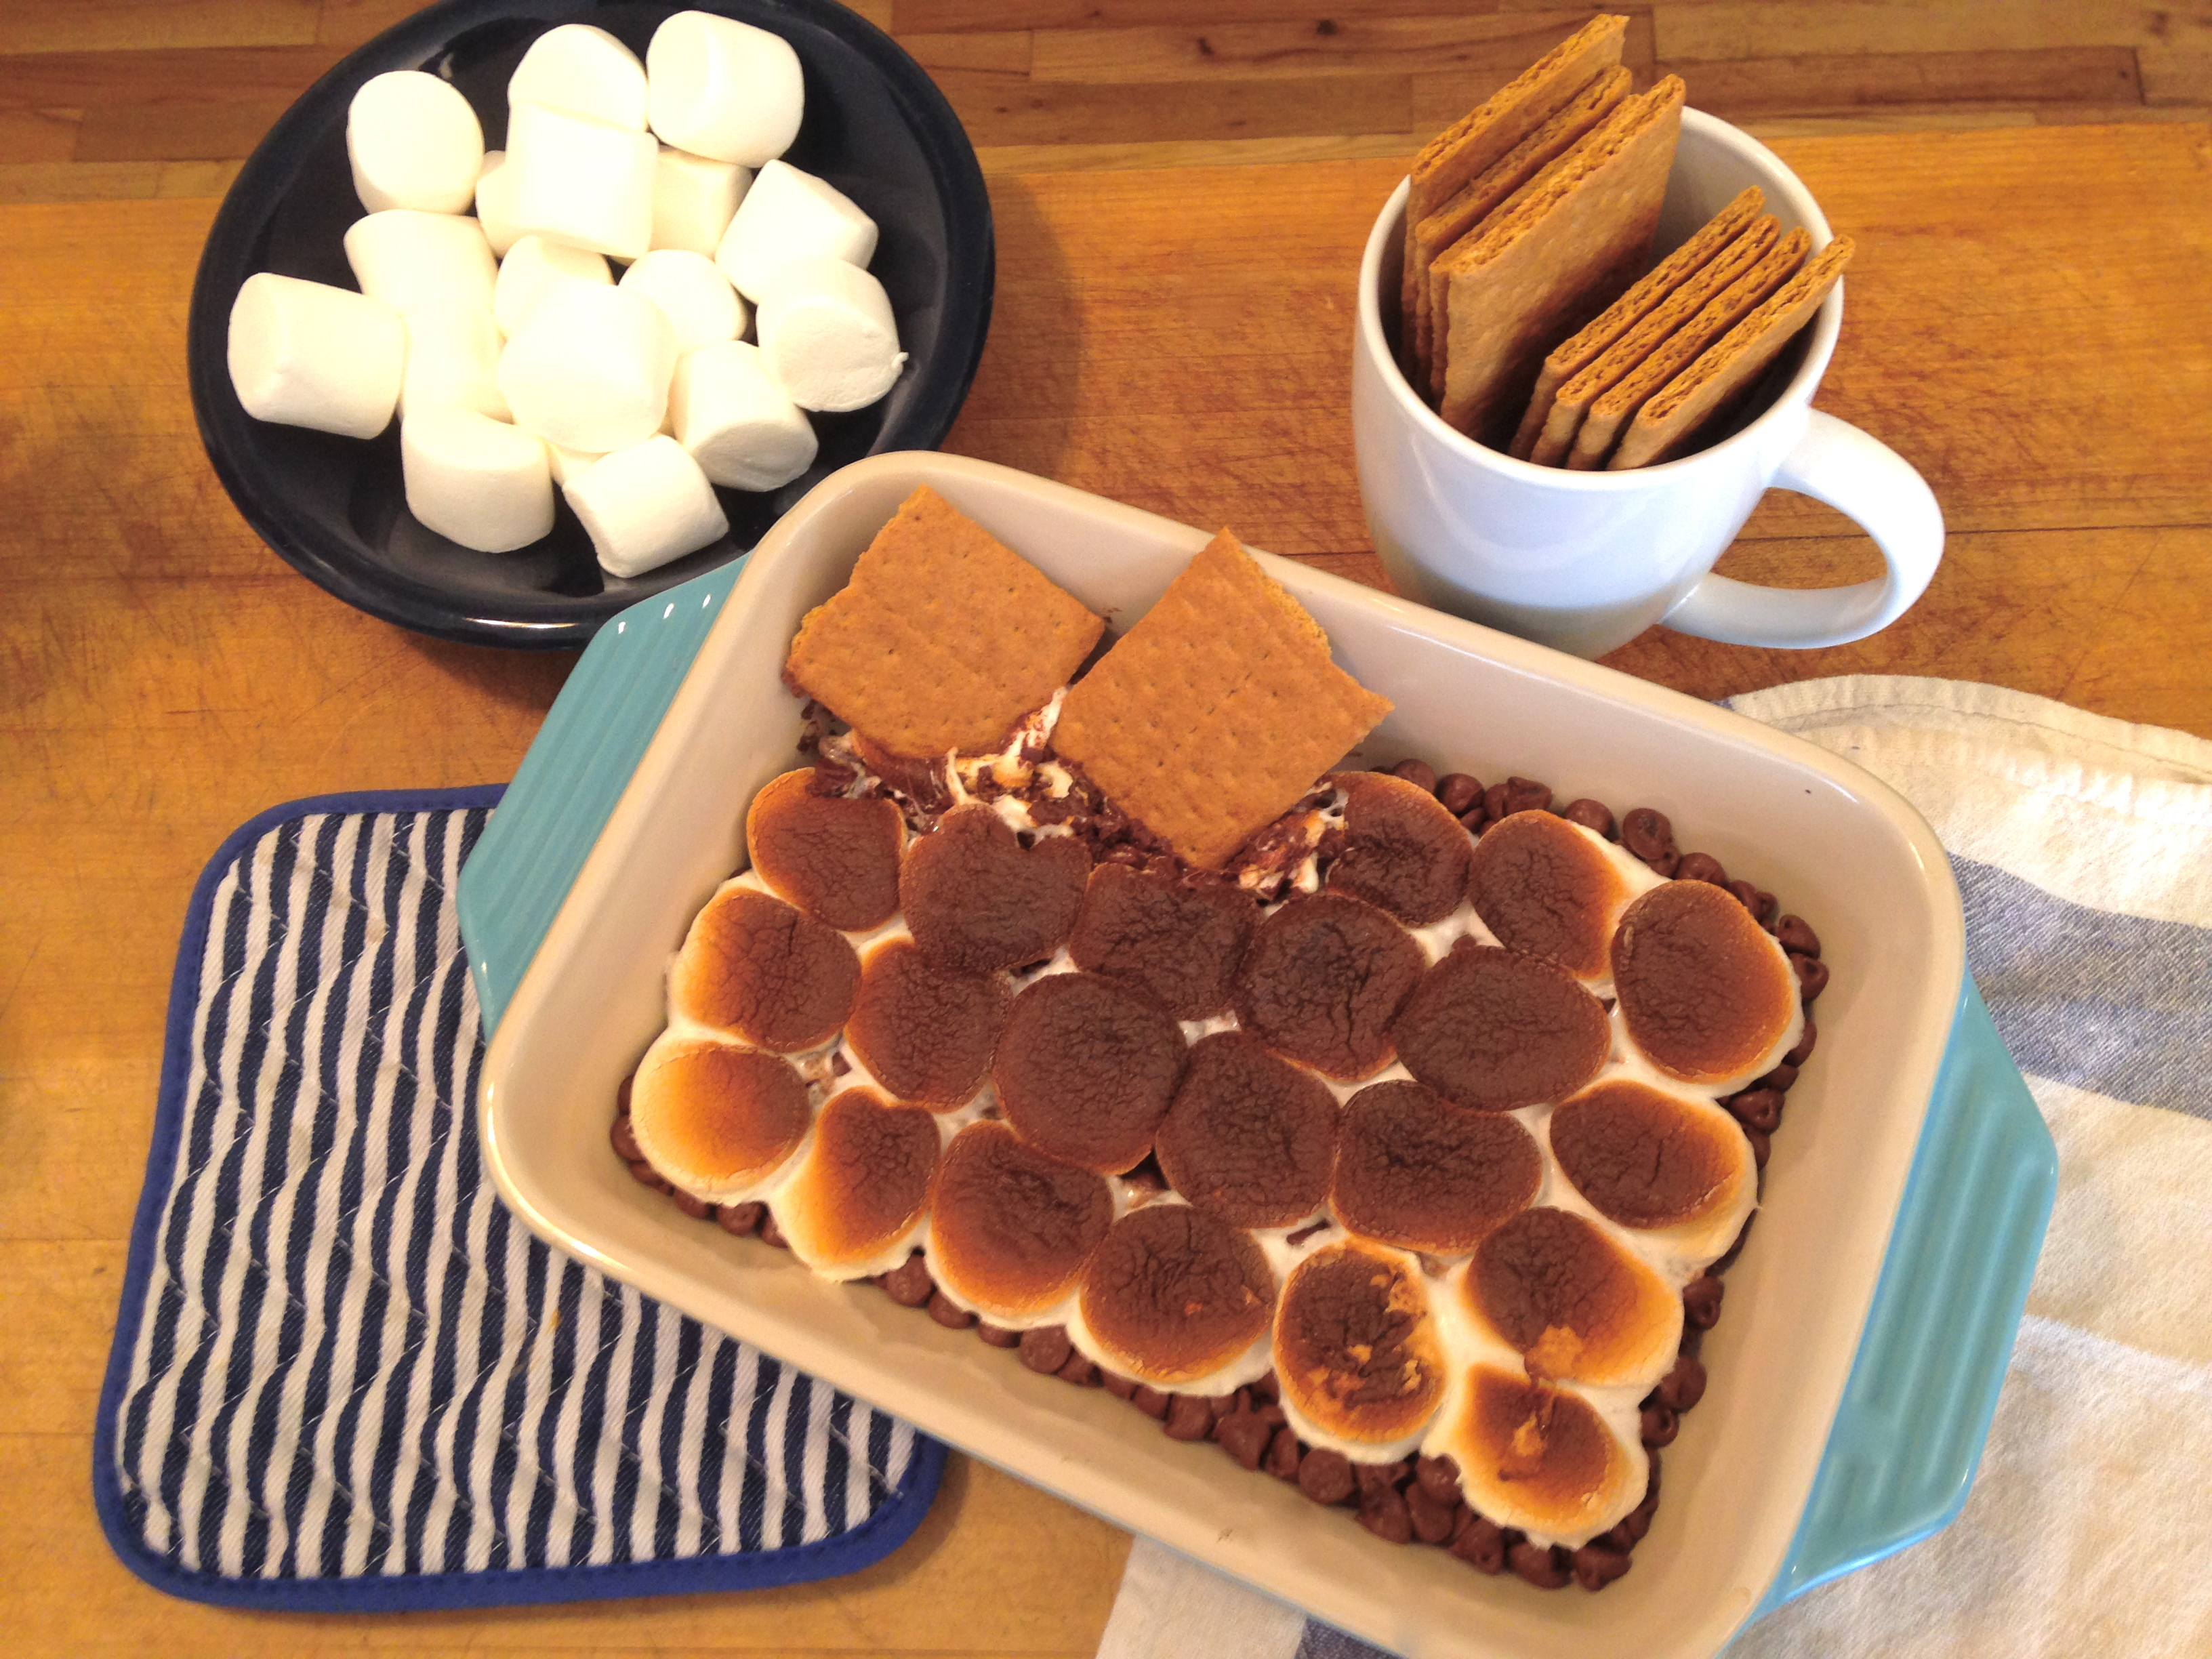 Homemade Indoor S'mores for a Cozy Winter Night In